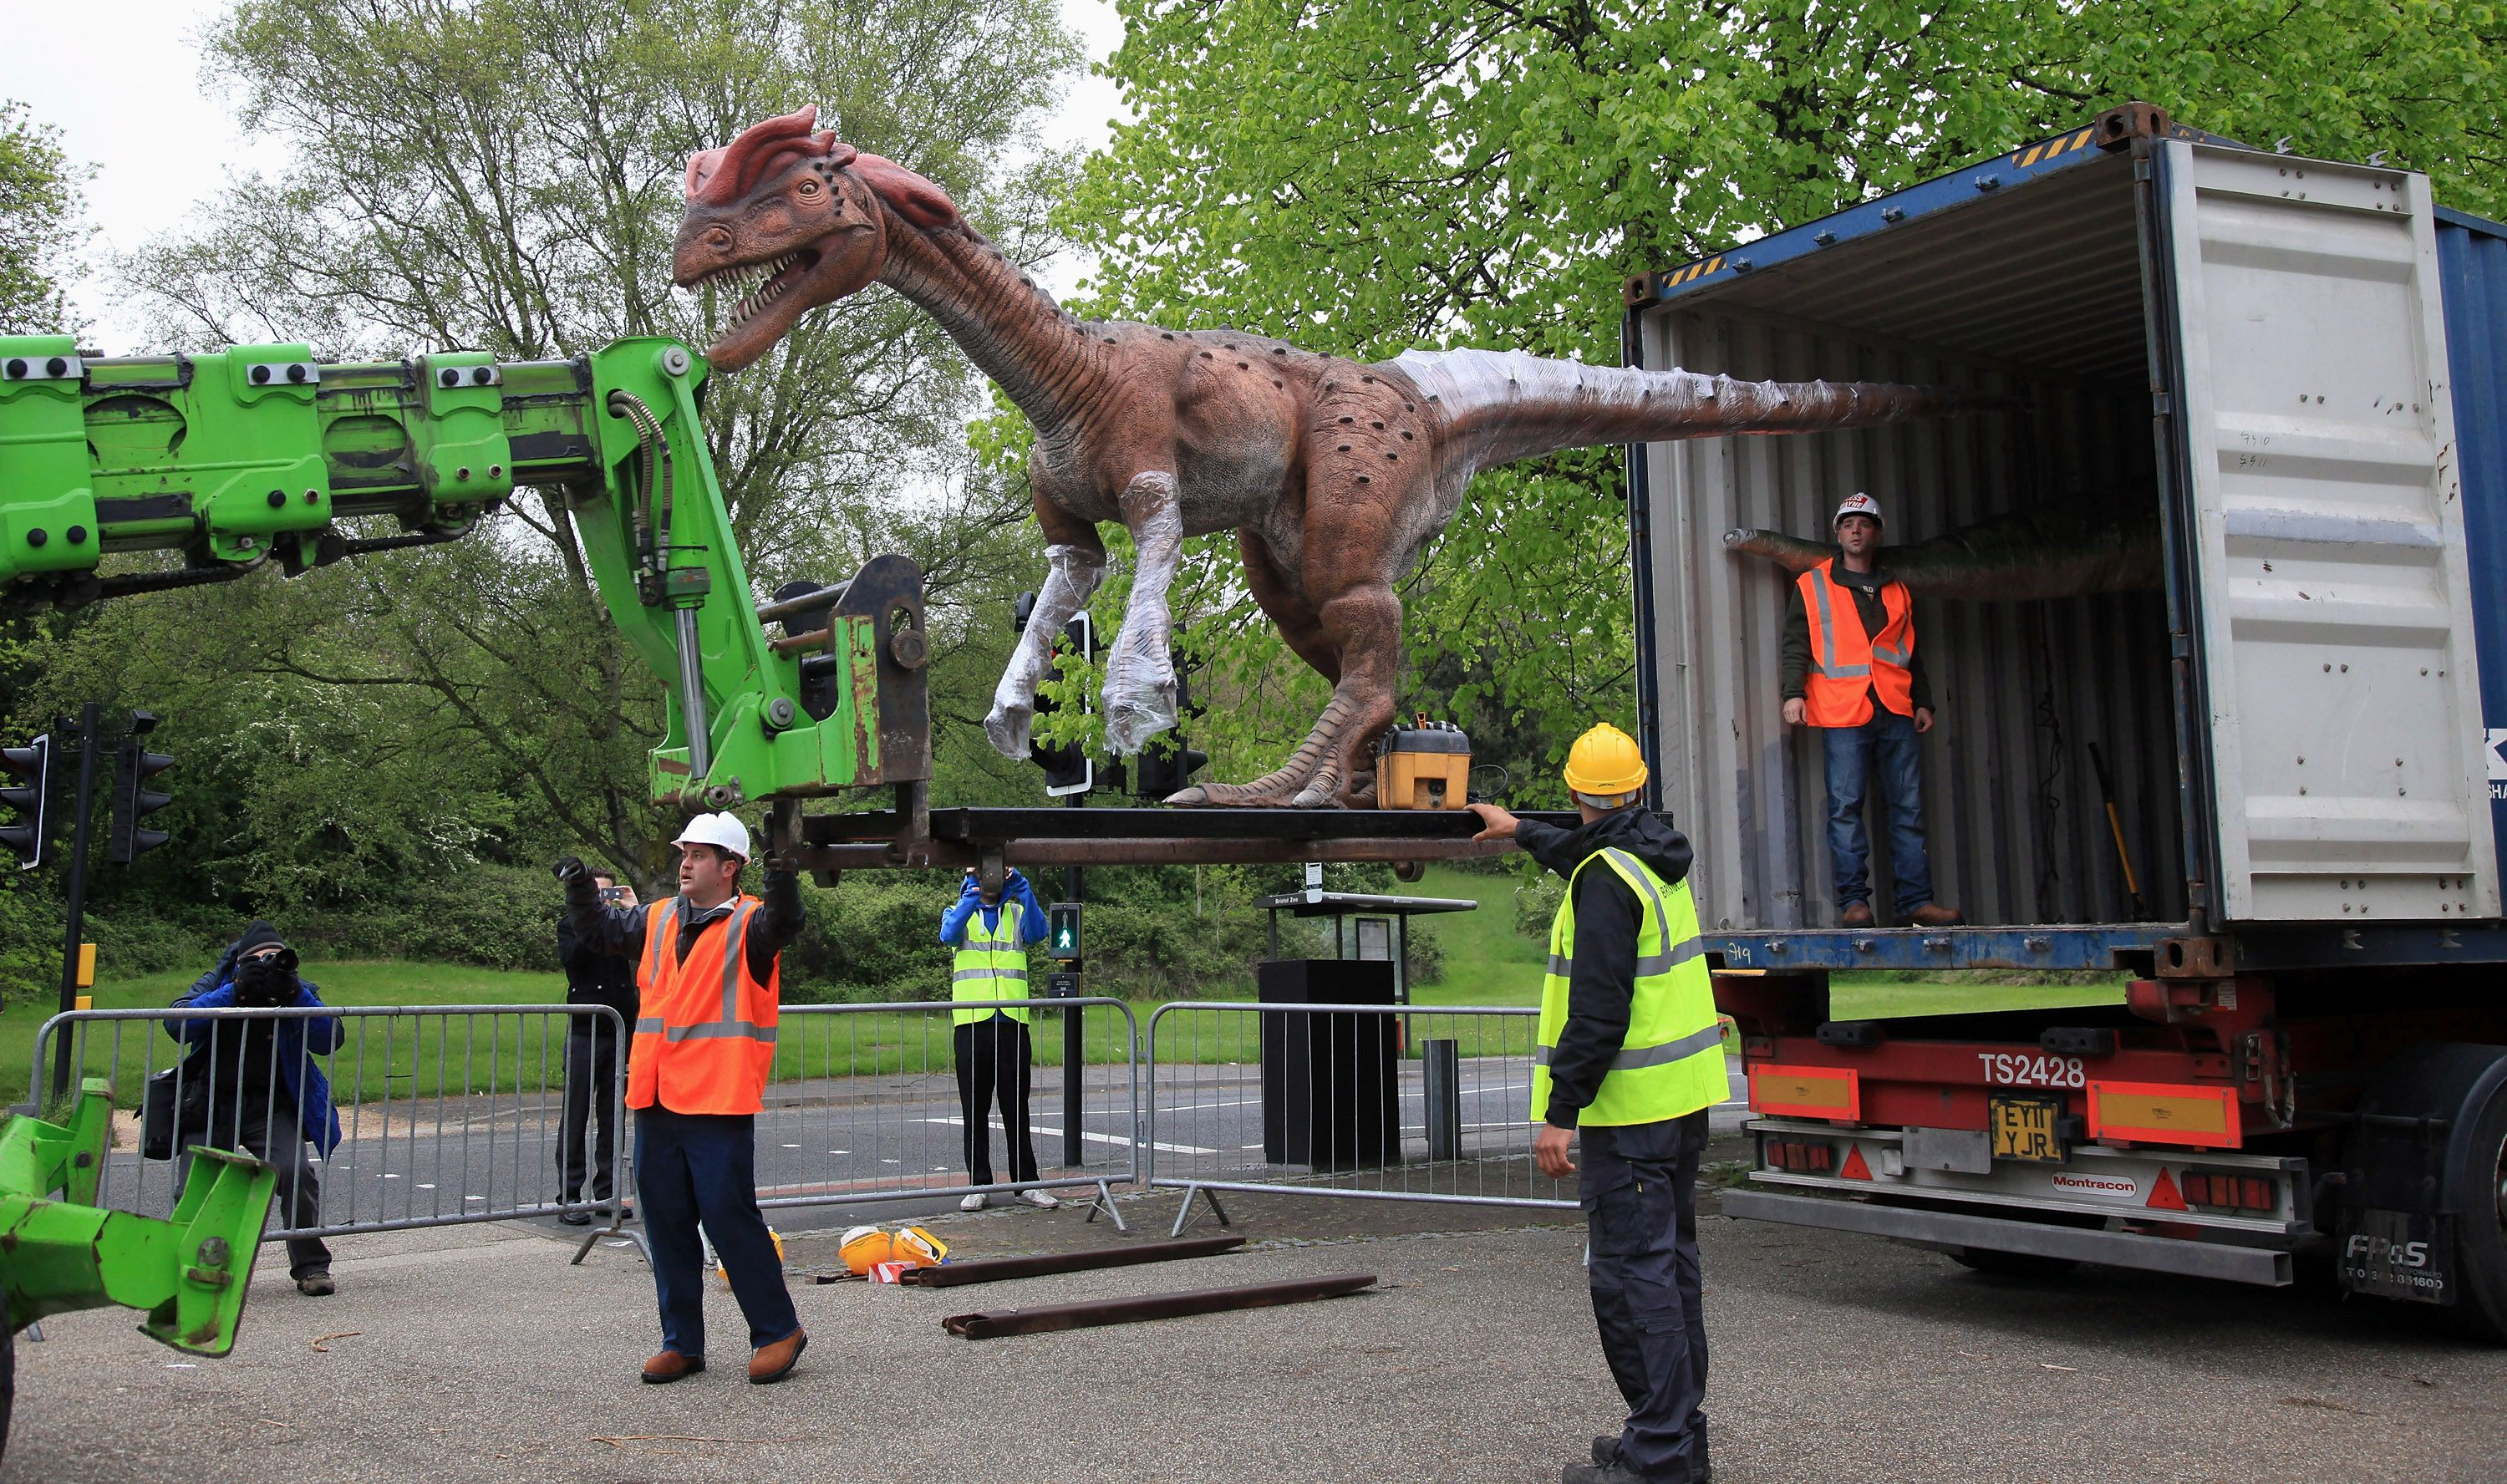 animatronic dinosaurs being unloaded from truck